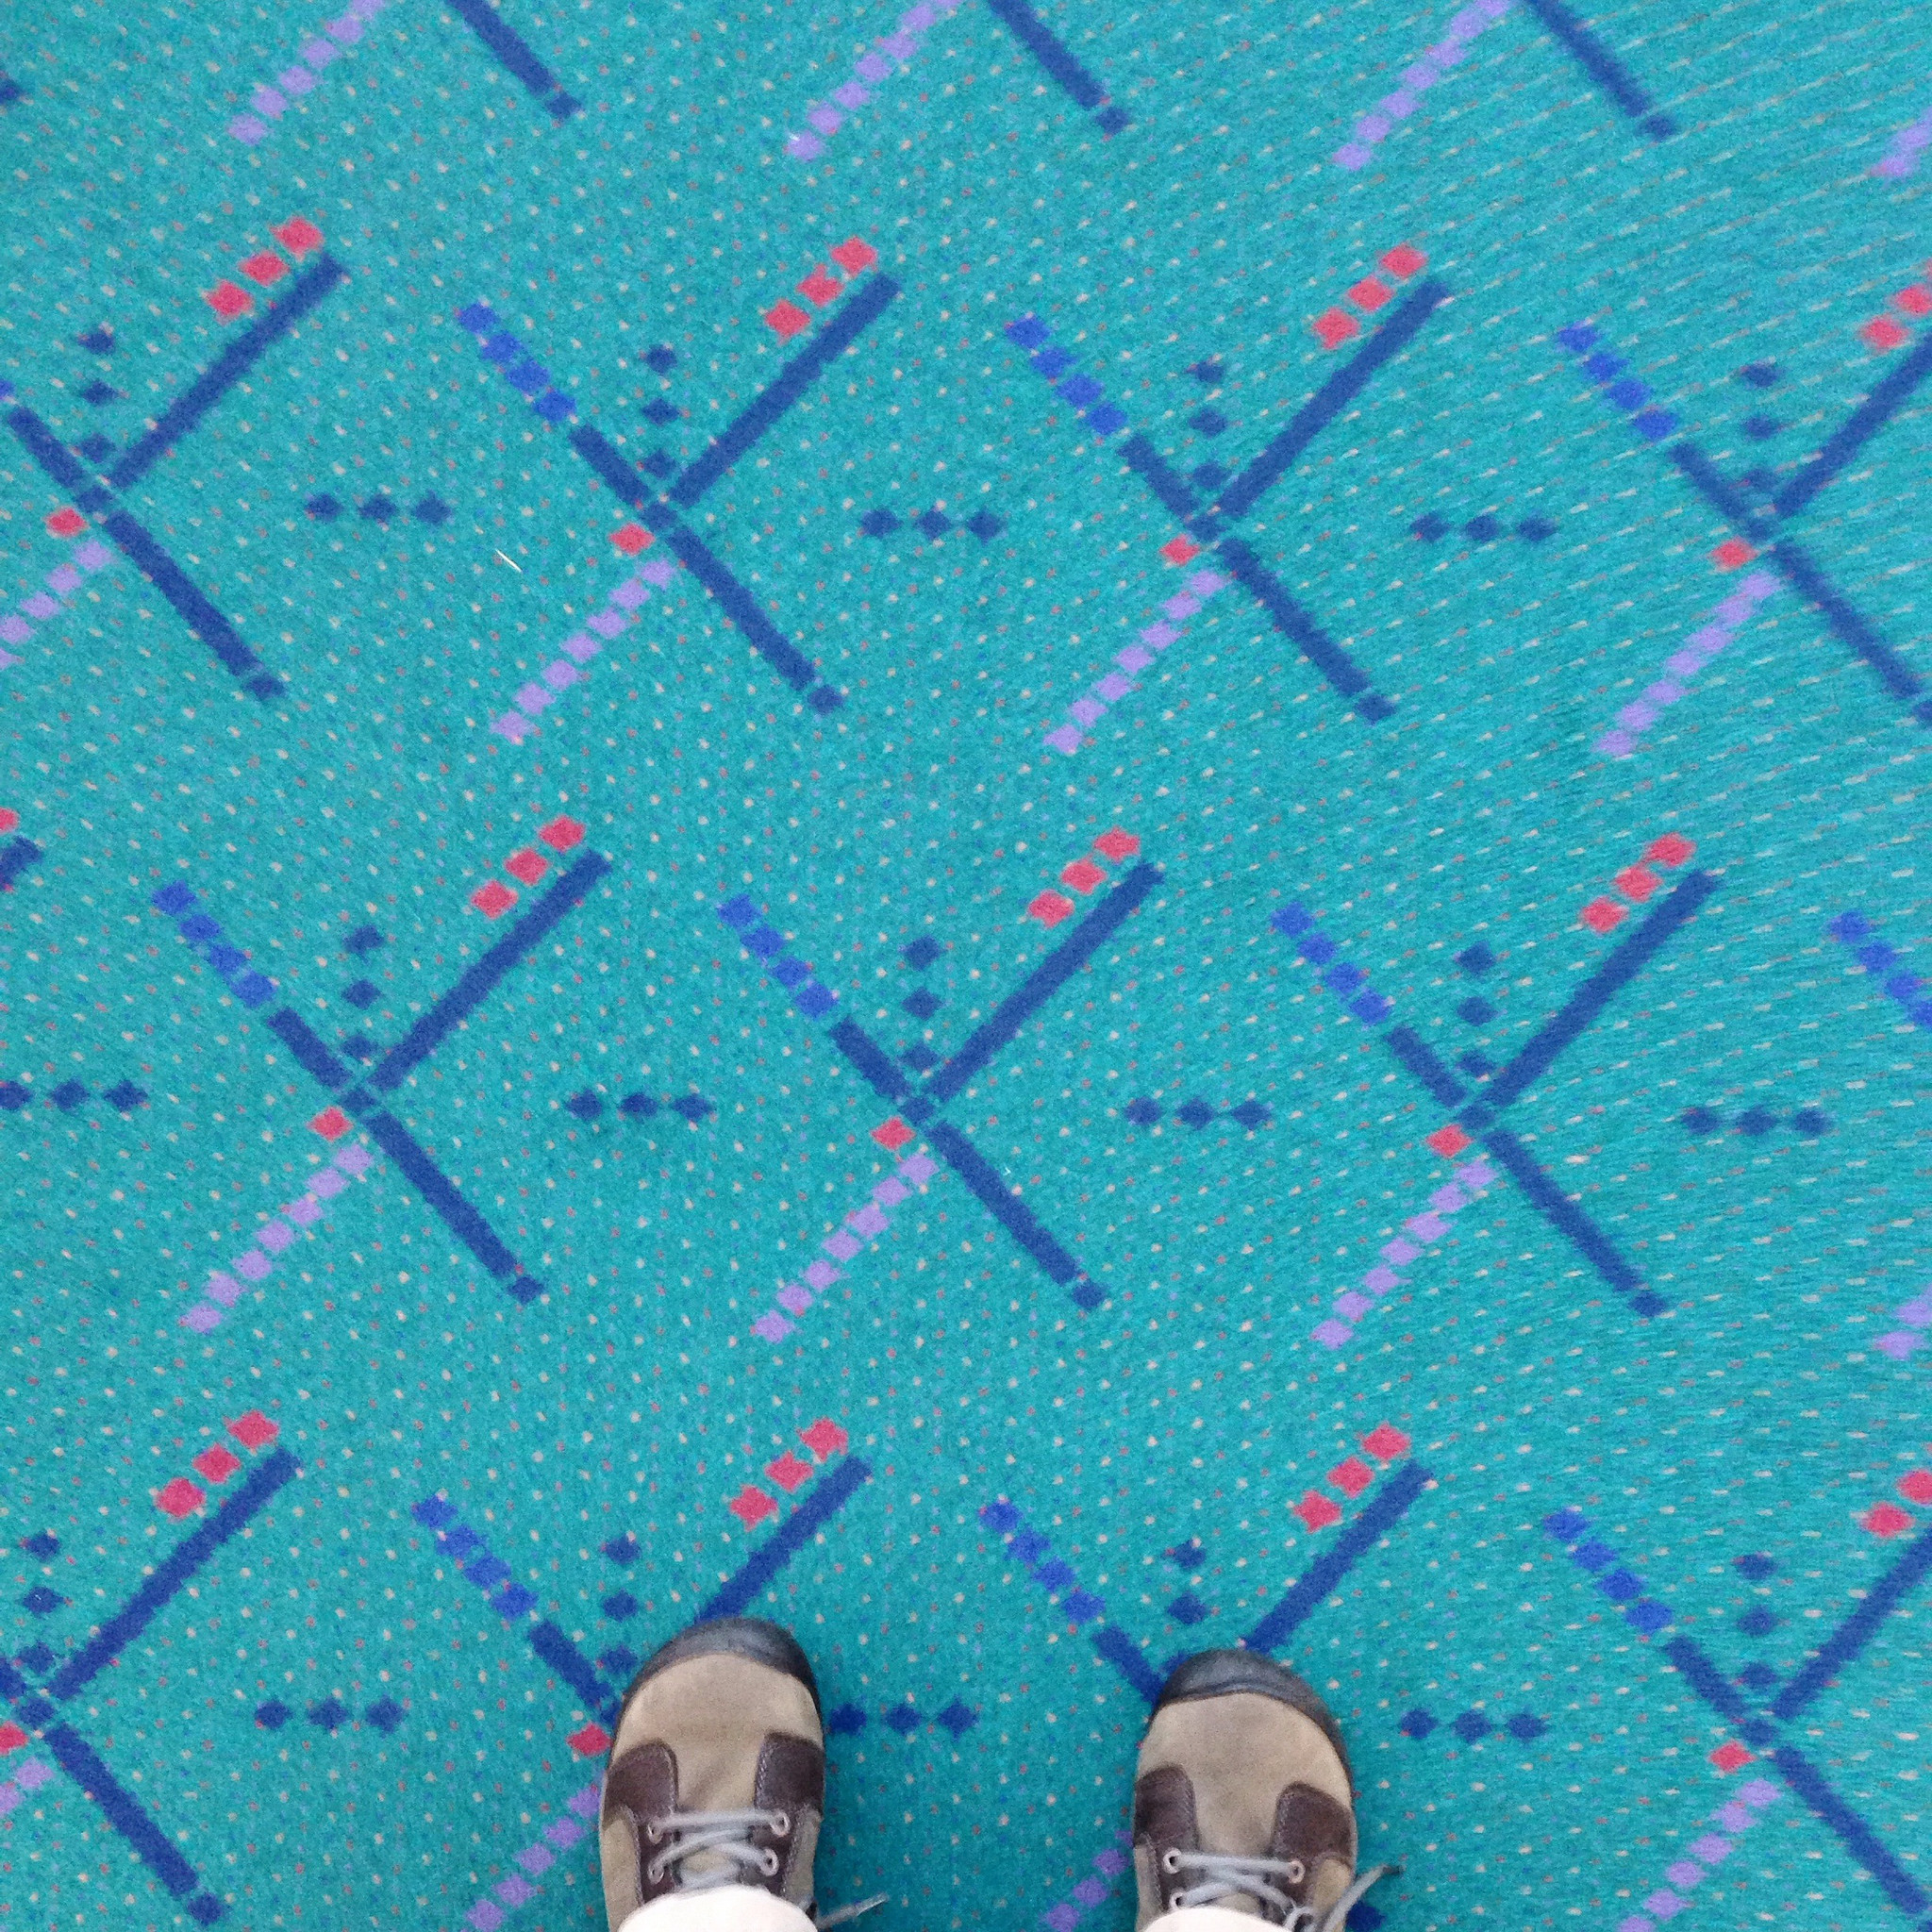 PDX carpet-barry caruth-flickr